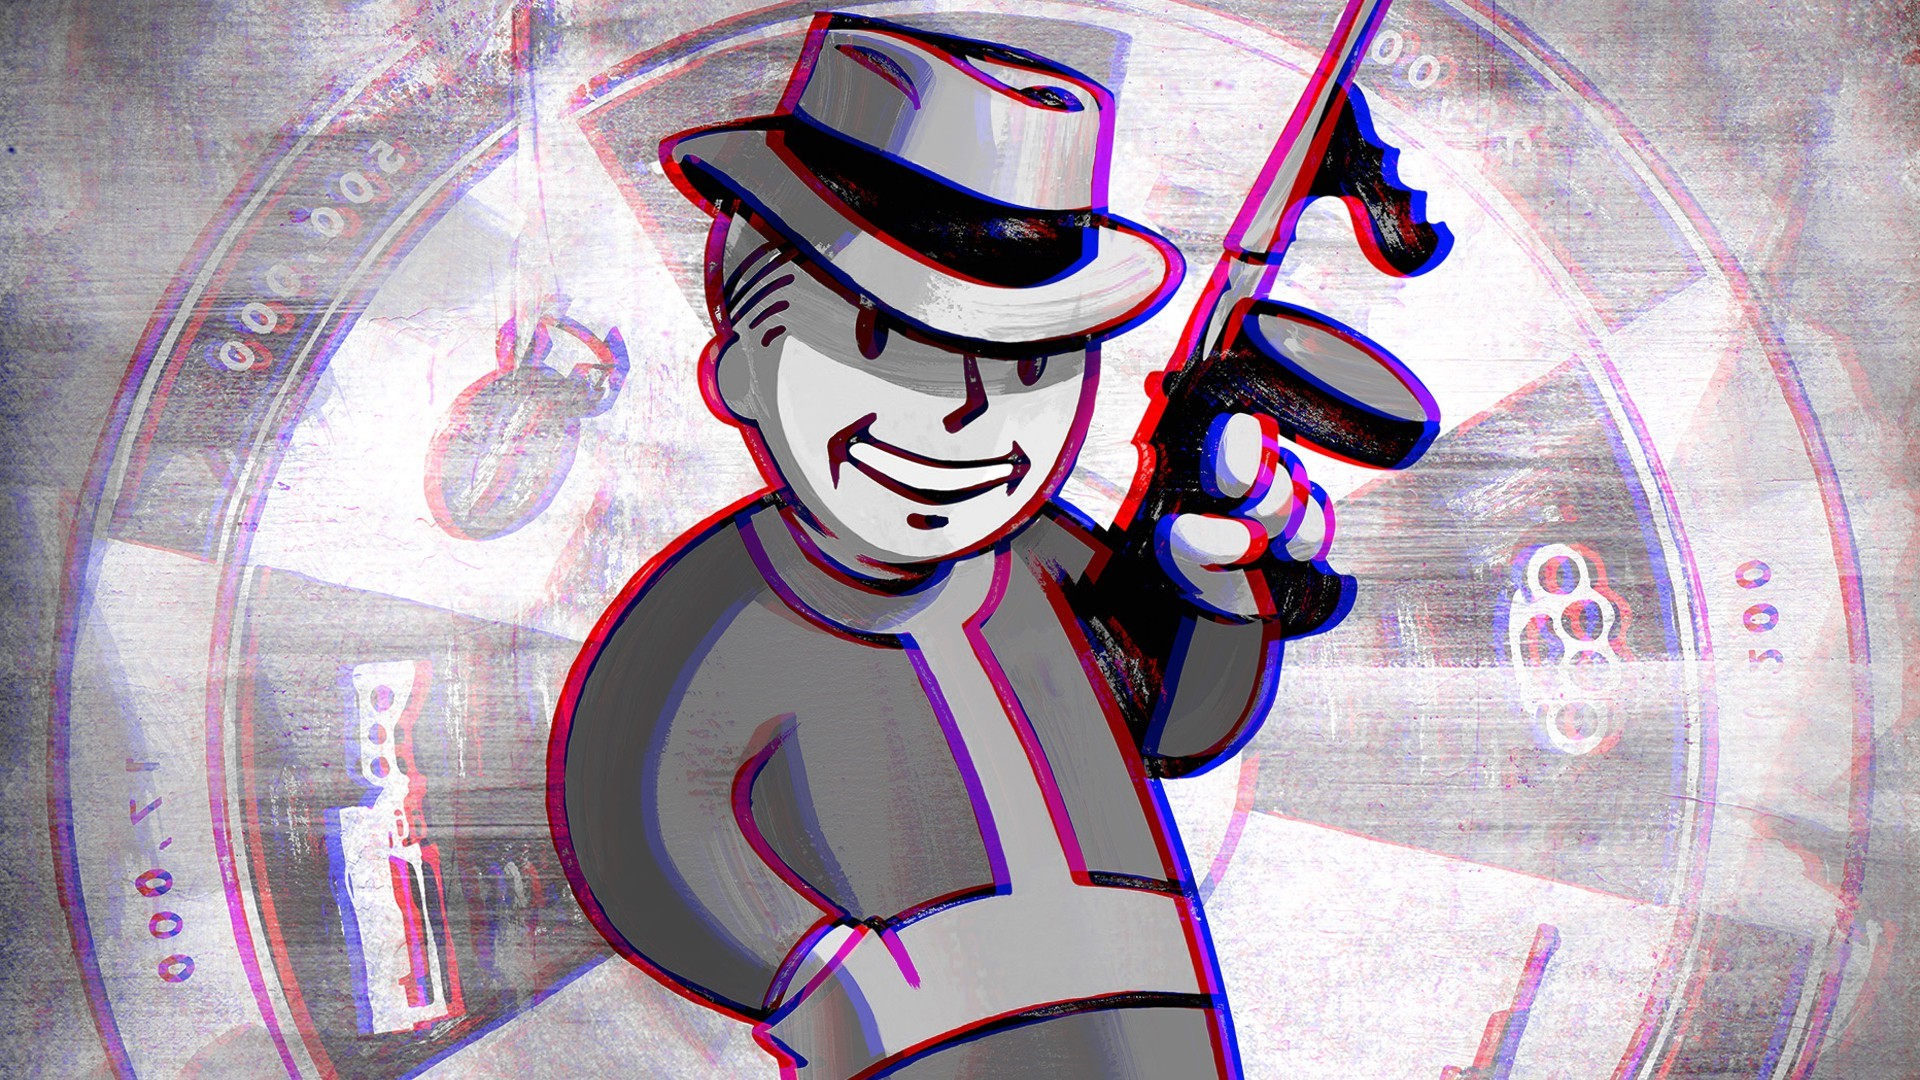 3d Anaglyph Wallpapers Free Download Fallout Pip Boy Wallpaper 67 Images